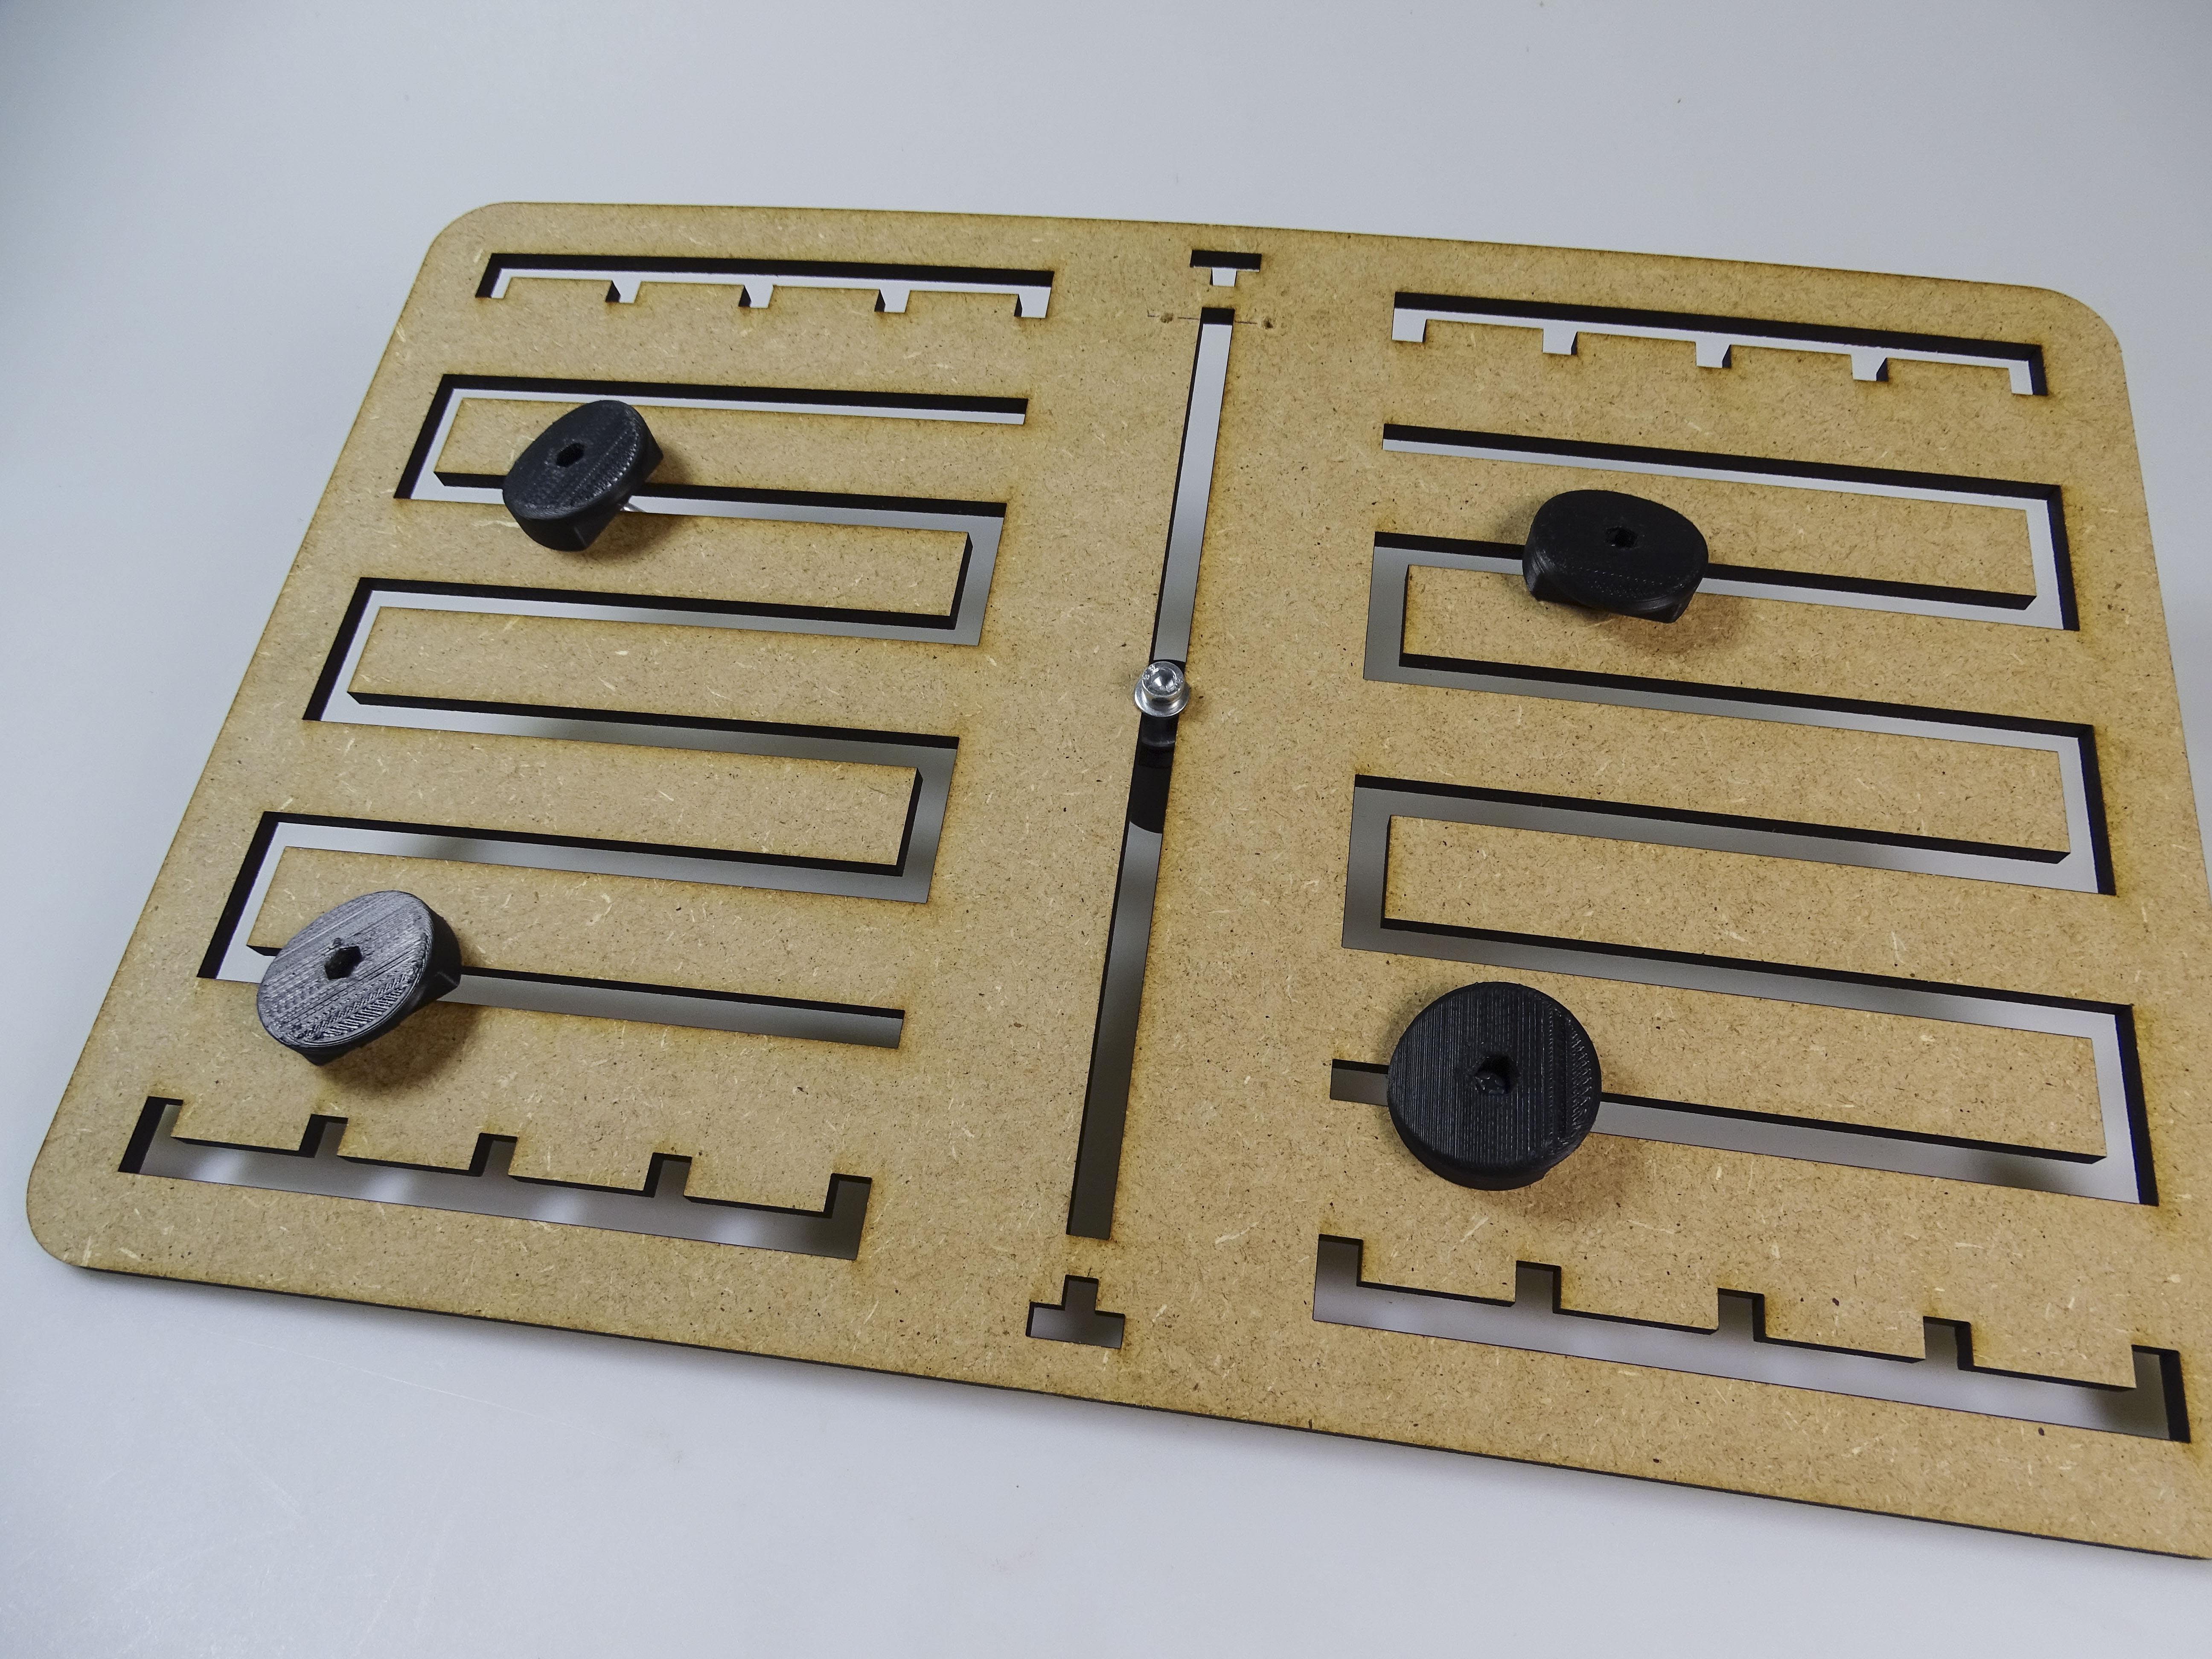 Picture of ONLY FOR TABLETS: Attaching the Clamps for Tablets